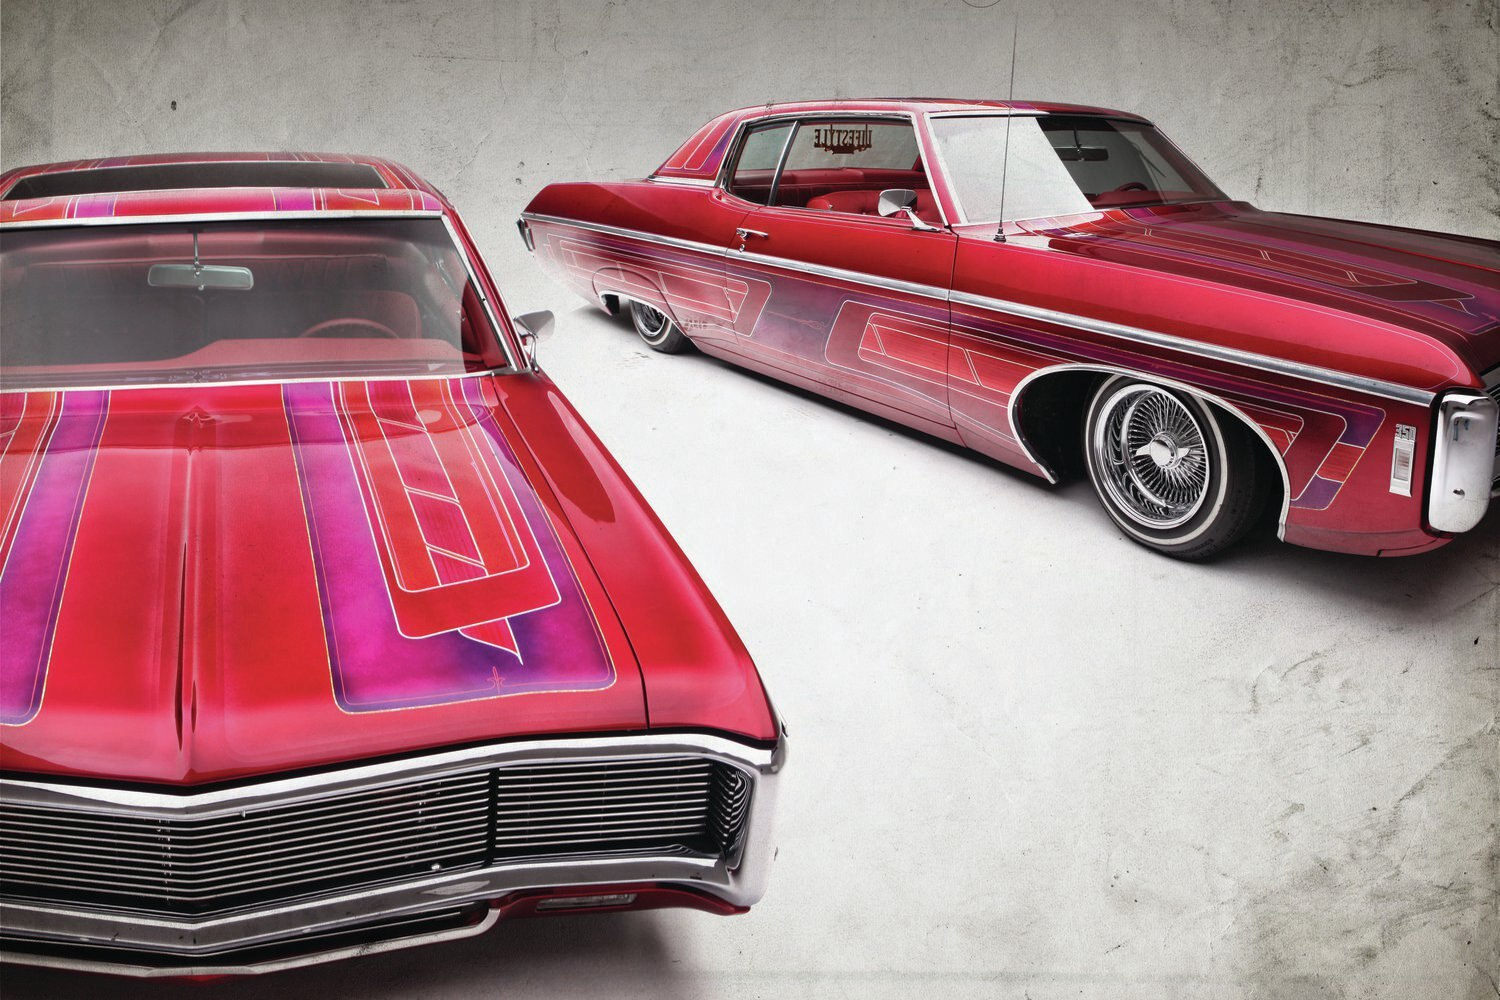 1969-chevrolet-caprice-and-1968-impala-paranoid-collage1